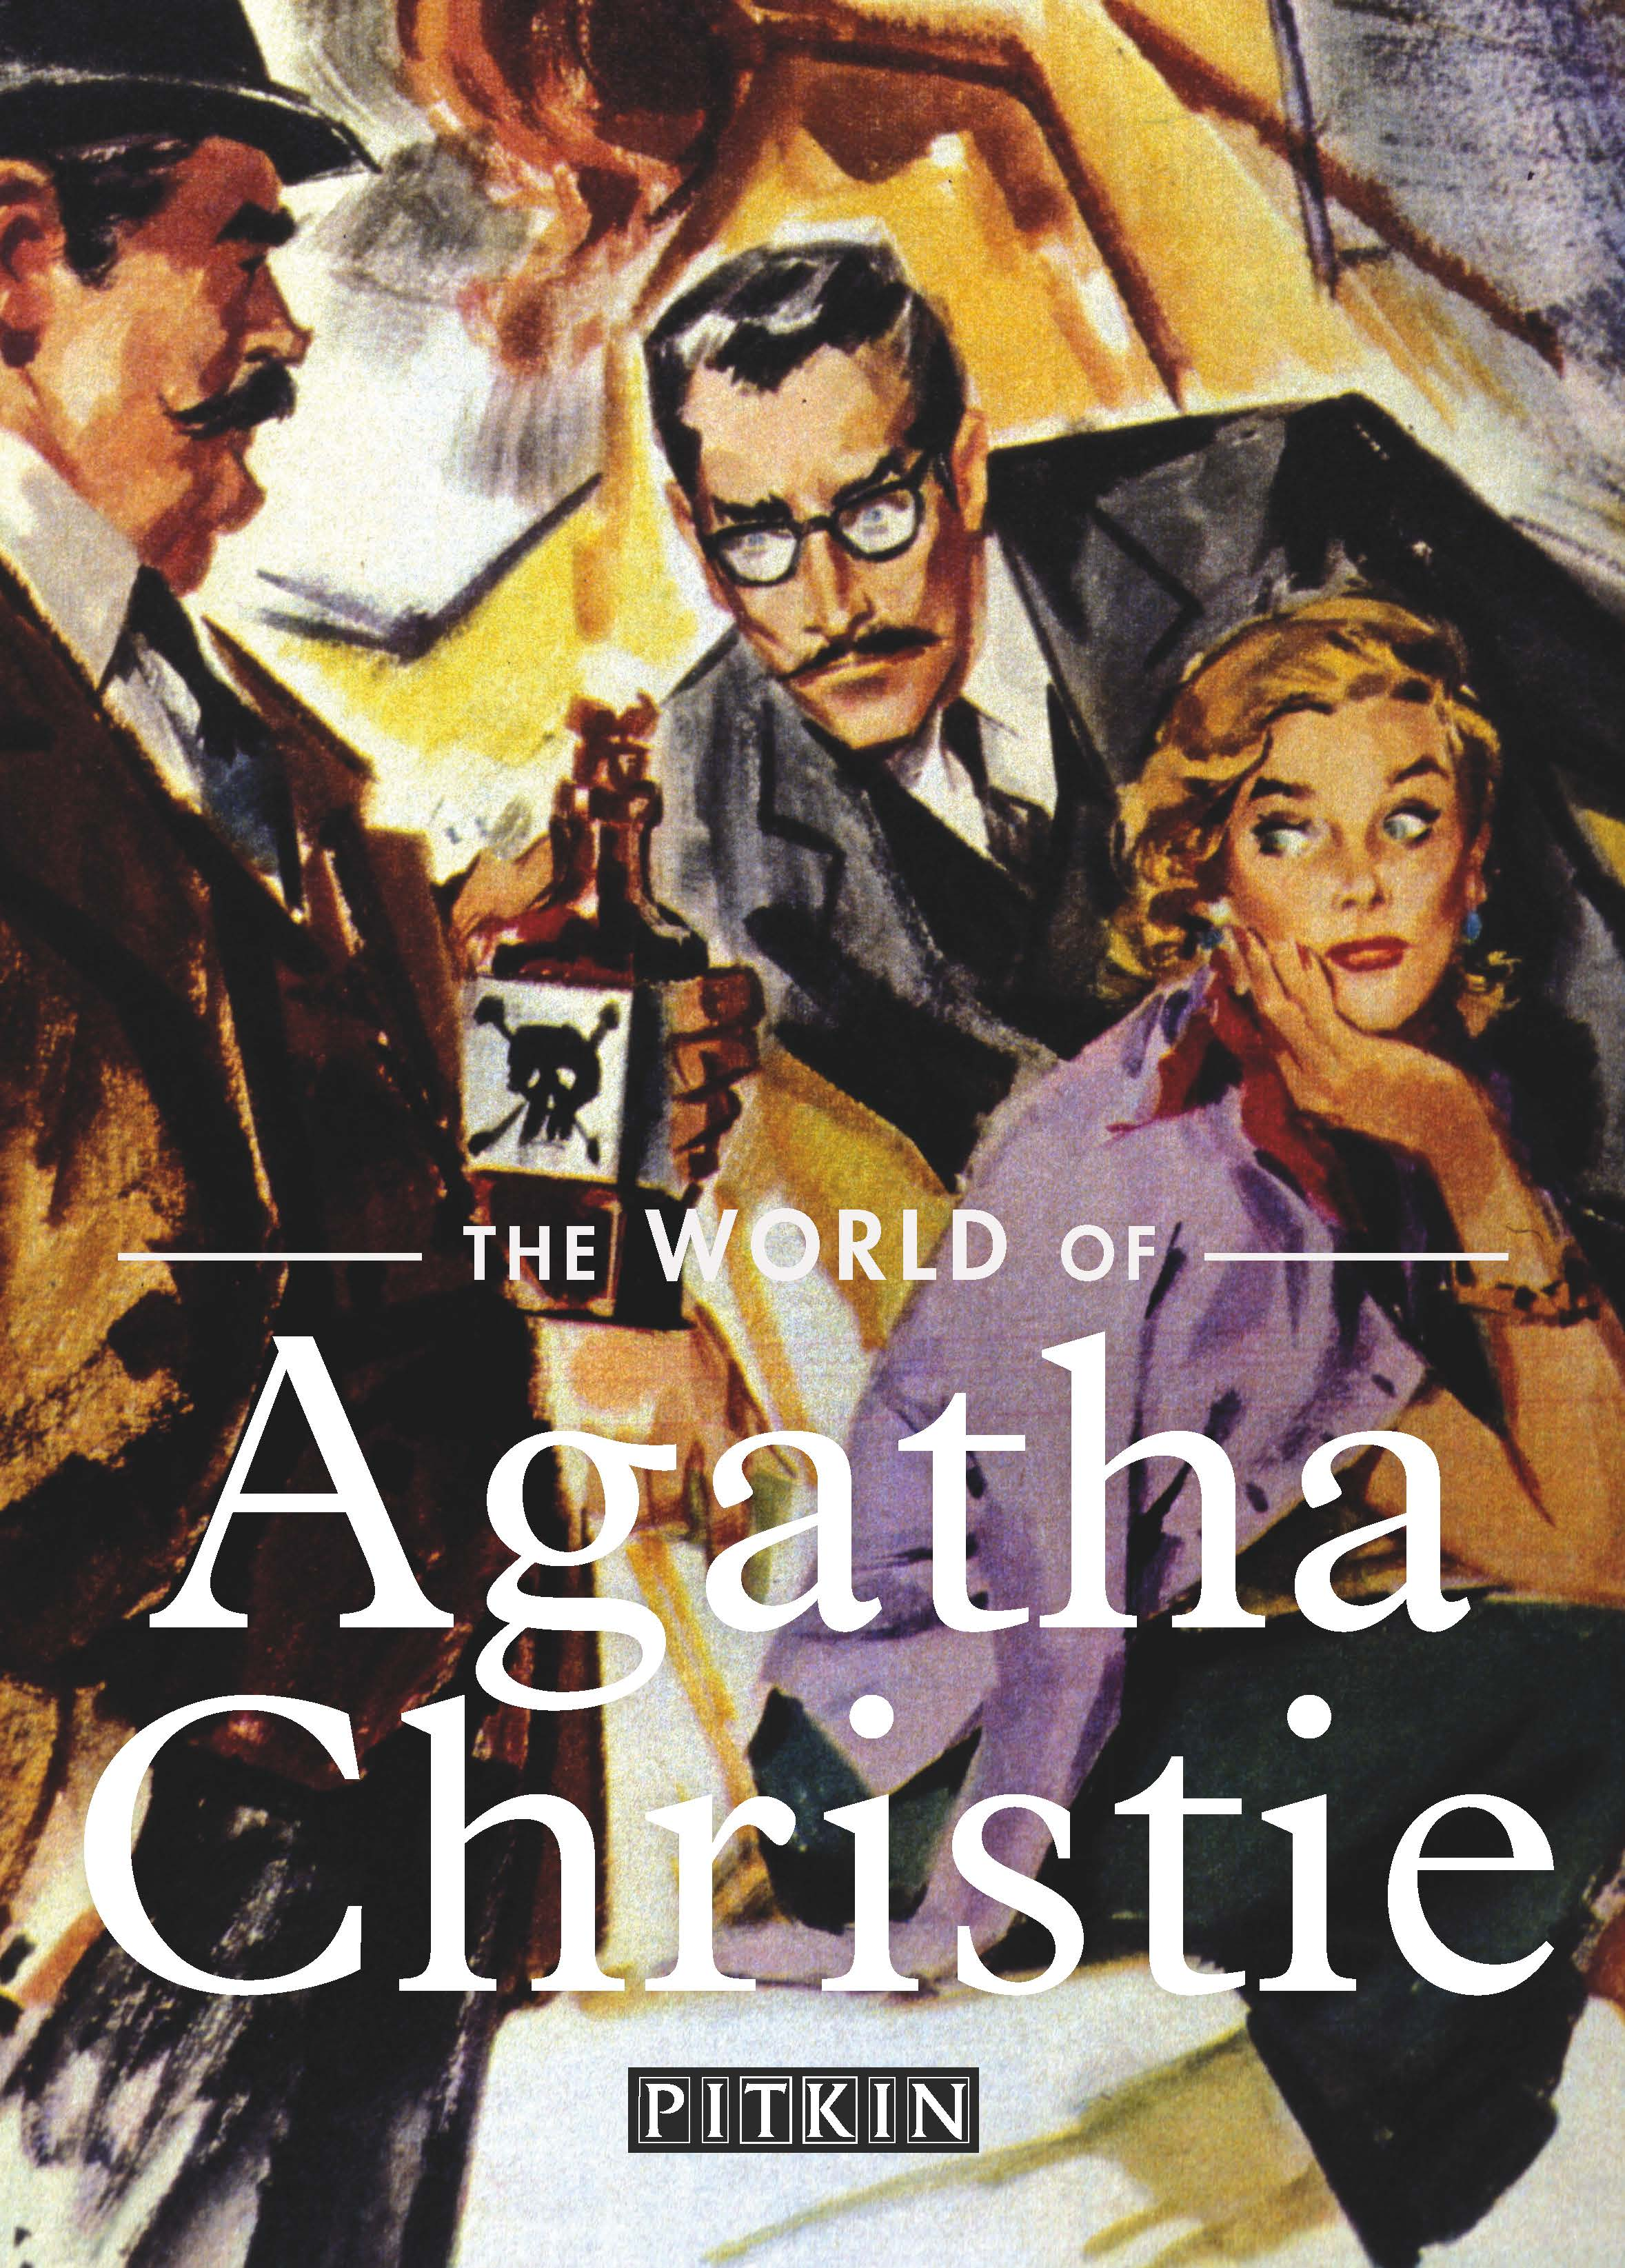 The World of Agatha Christie